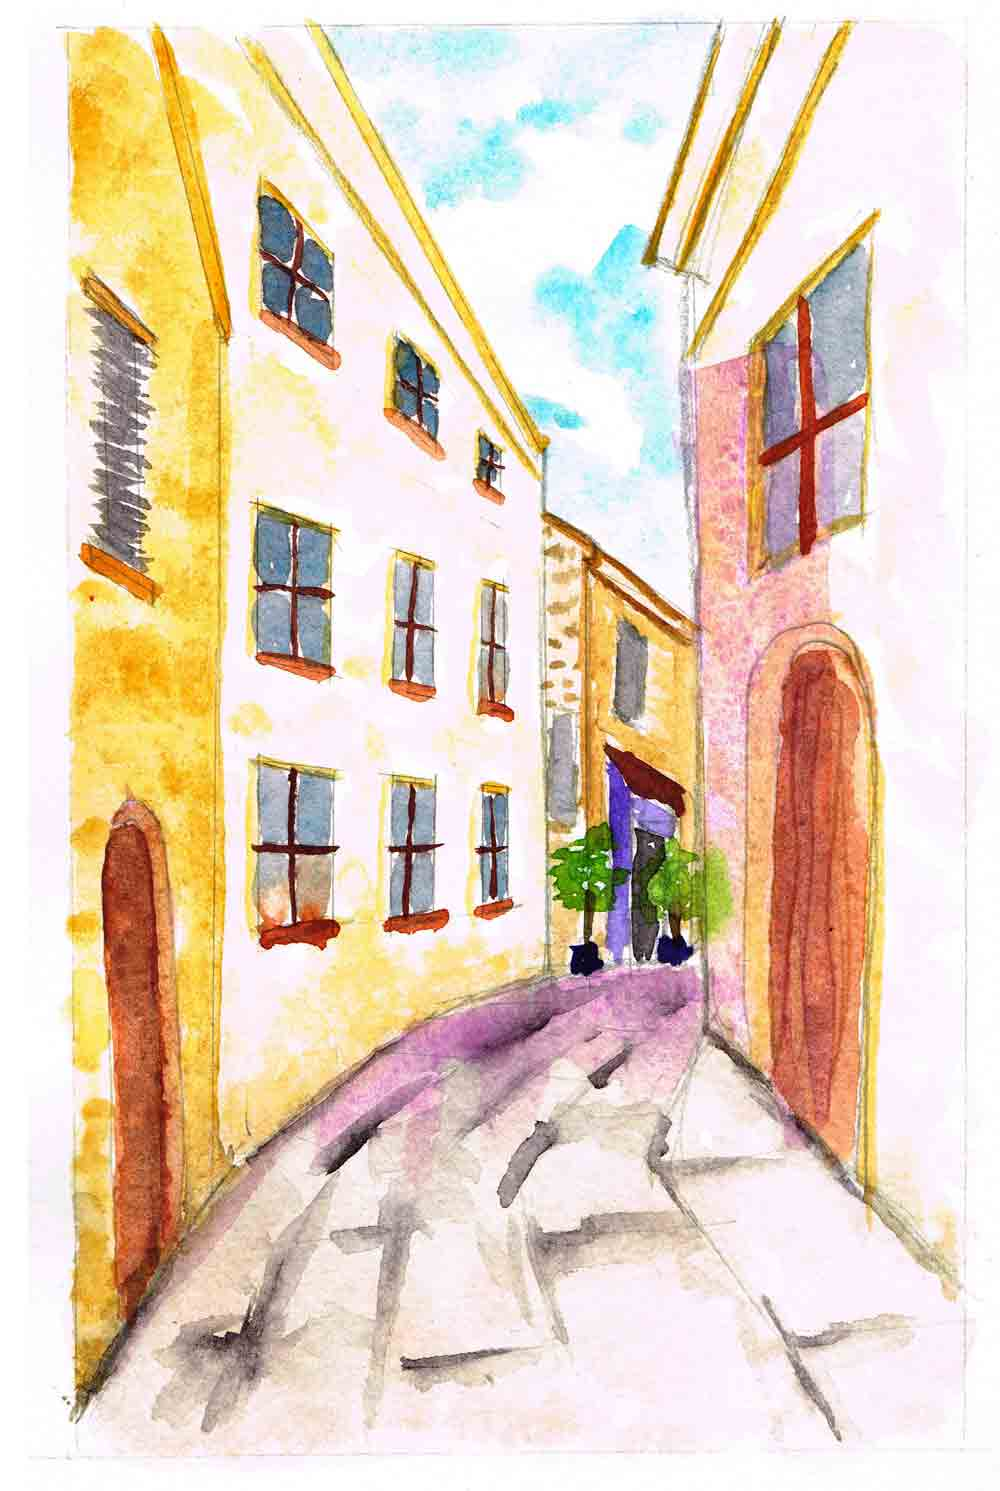 Sketching-buildings-8-In-the-Lanes-kw.jpg